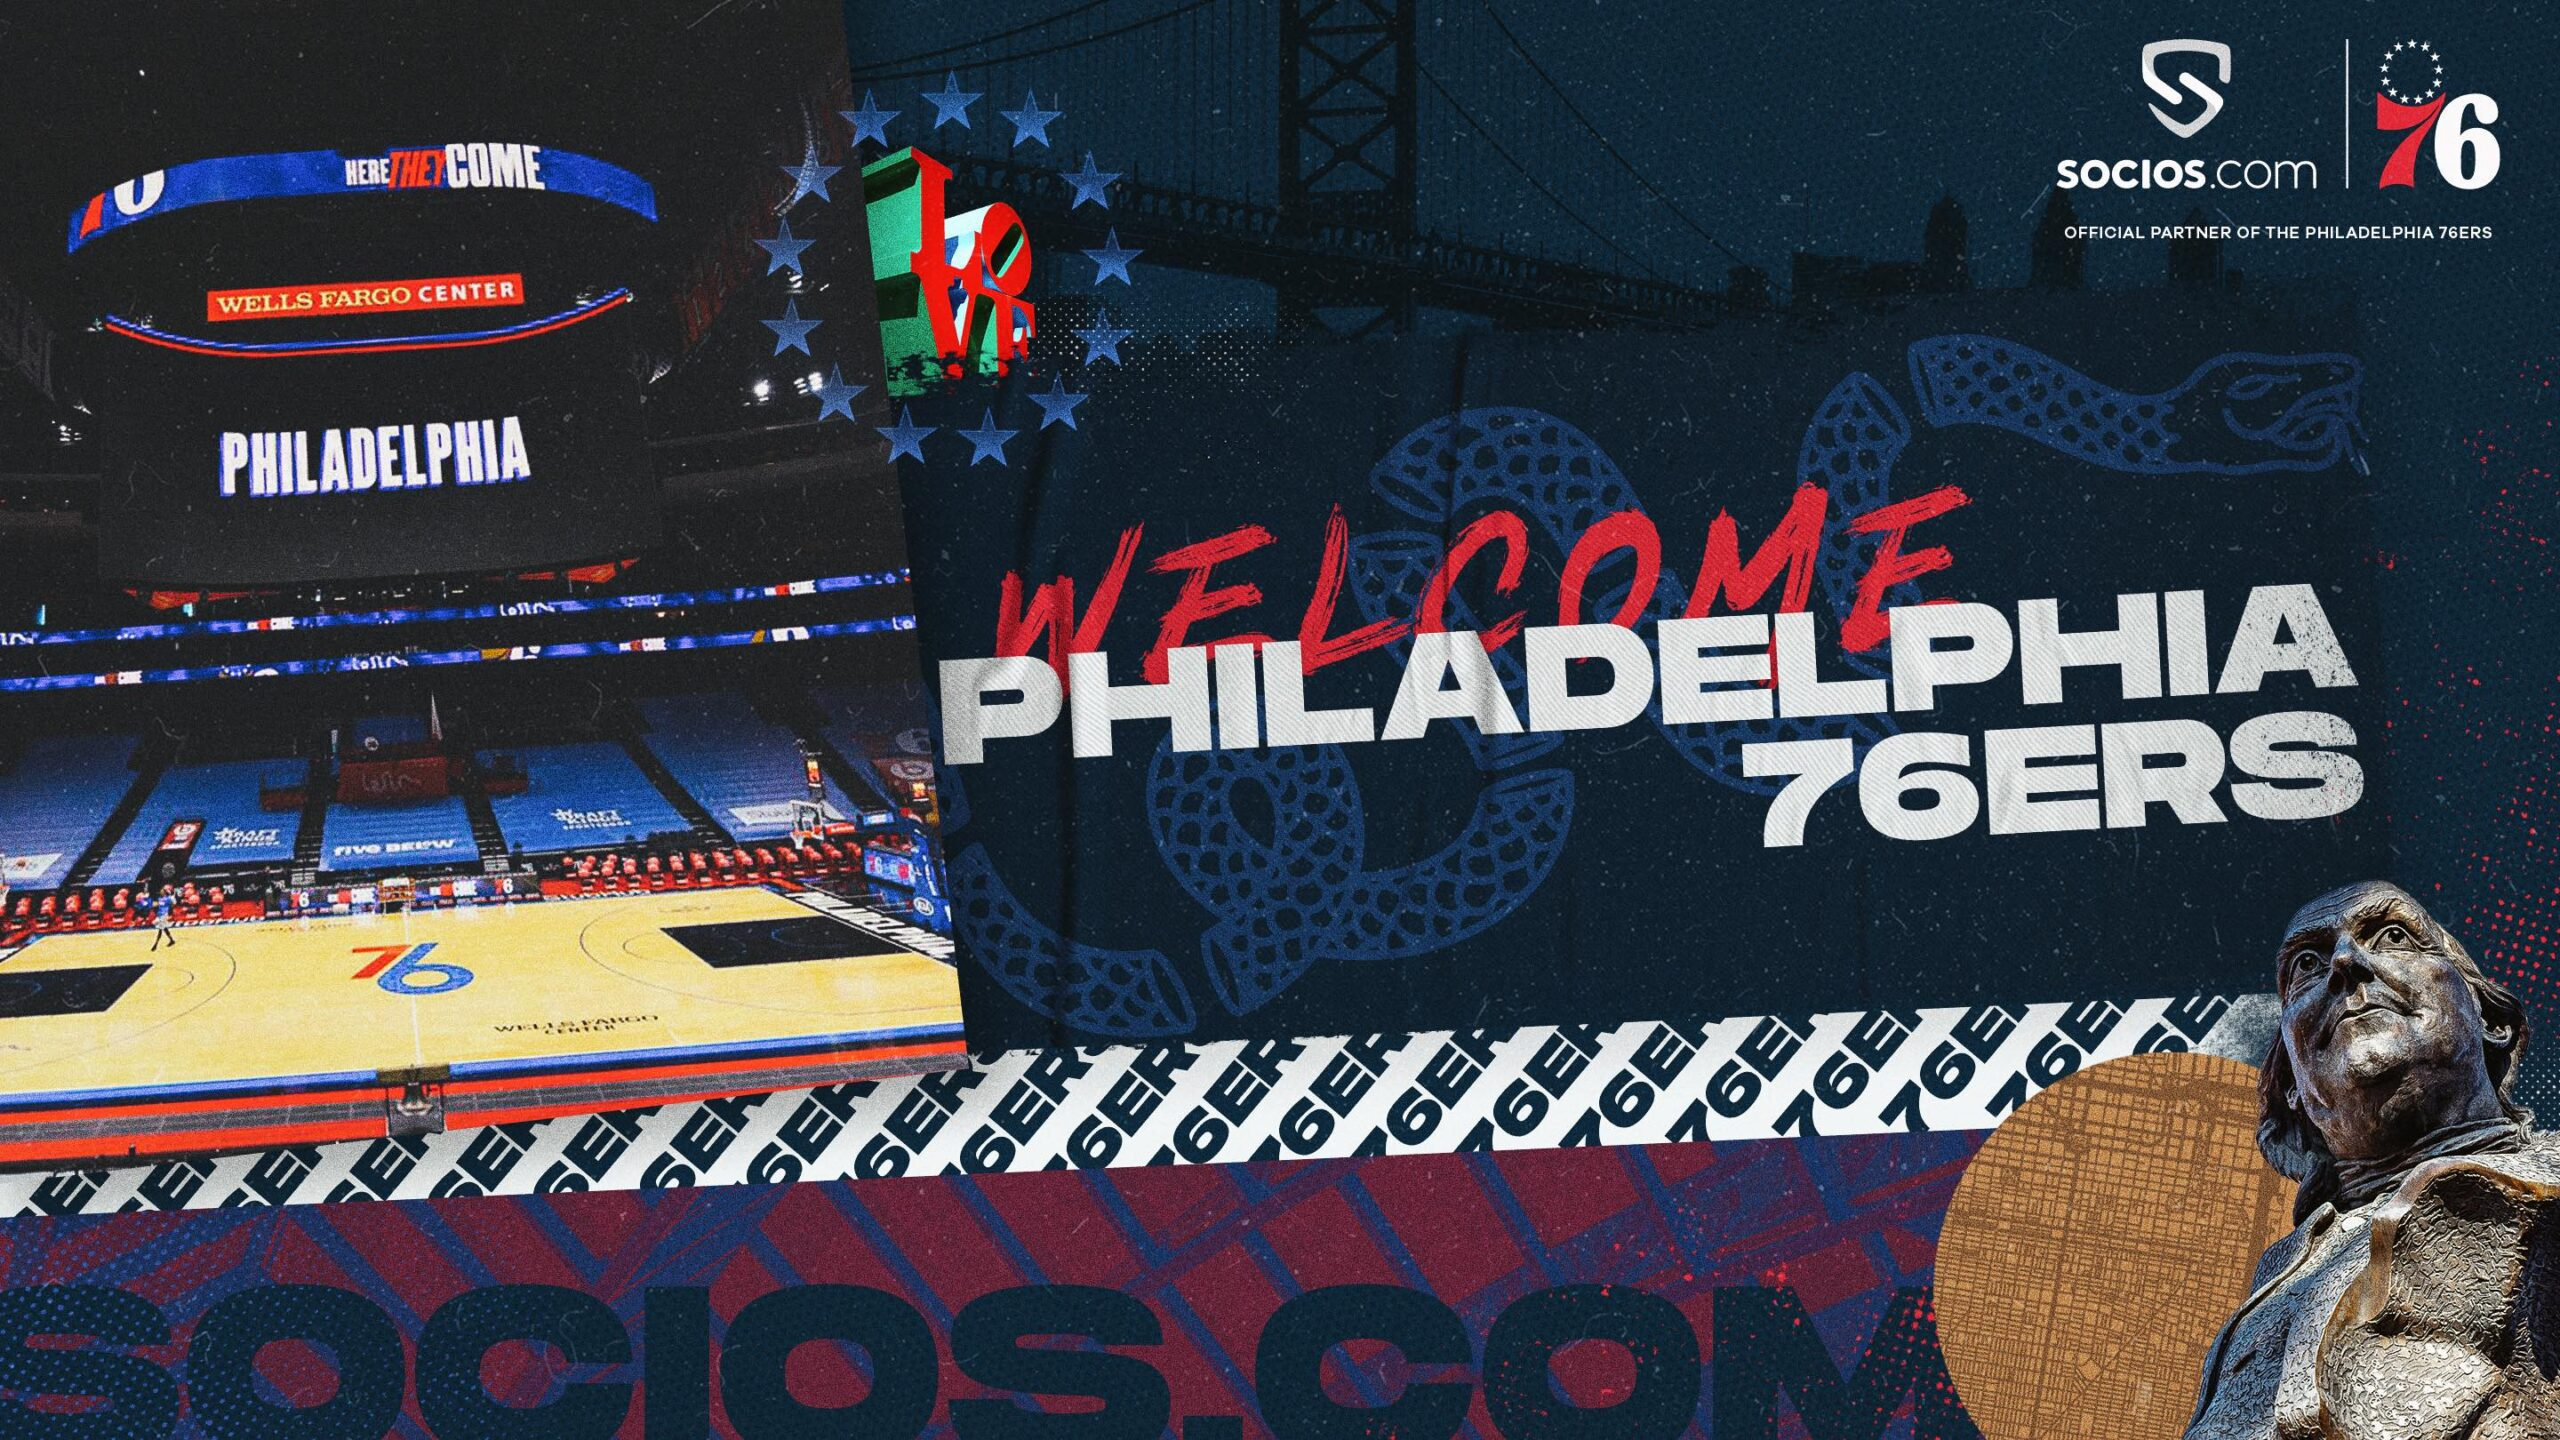 Philadelphia 76ers Become The First NBA Franchise To Partner With Socios.com - Socios